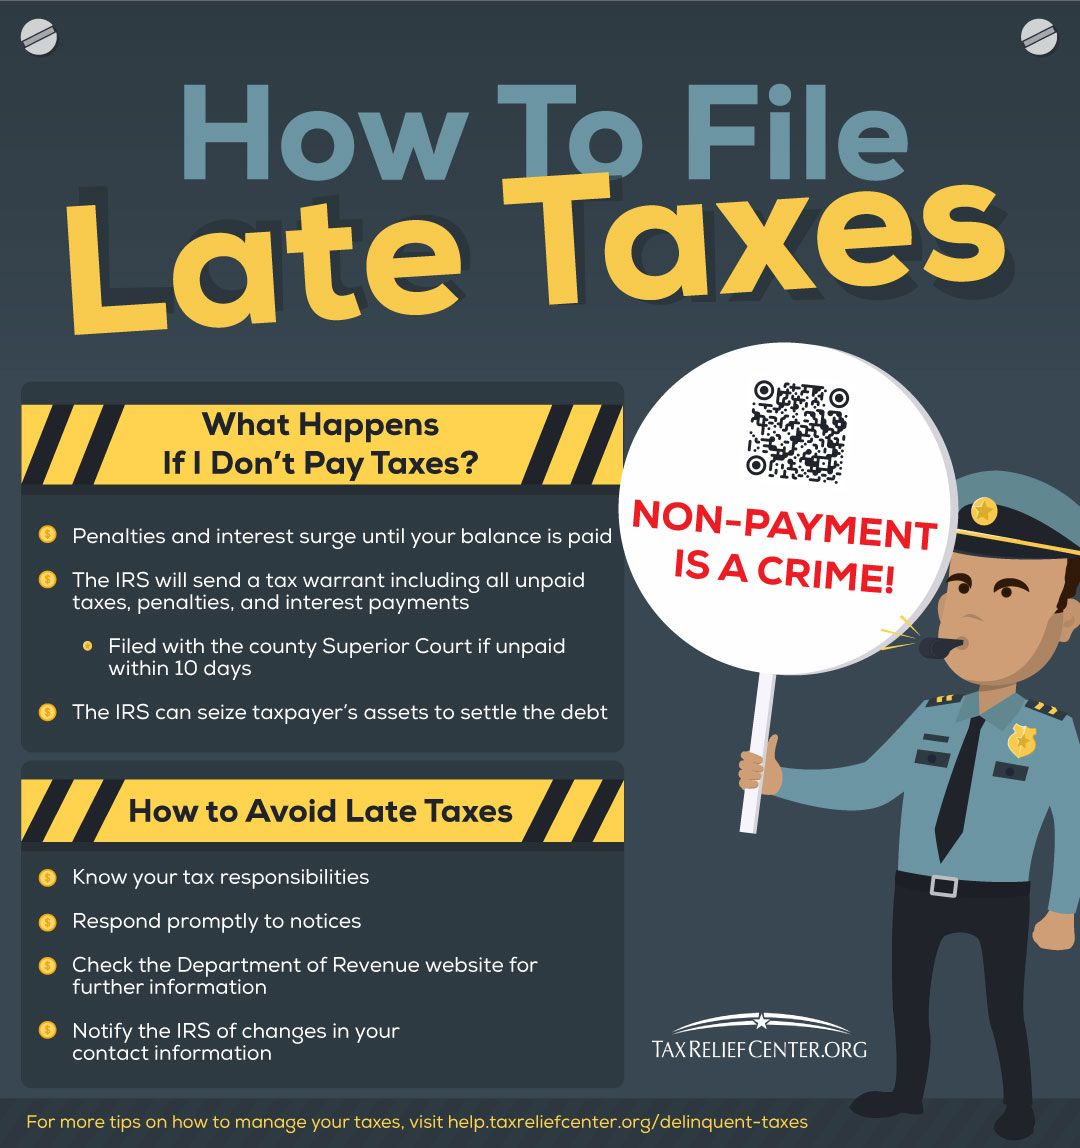 068d8481613034a37c644f4a63066f7b - How Much Can You Expect To Get Back From Taxes